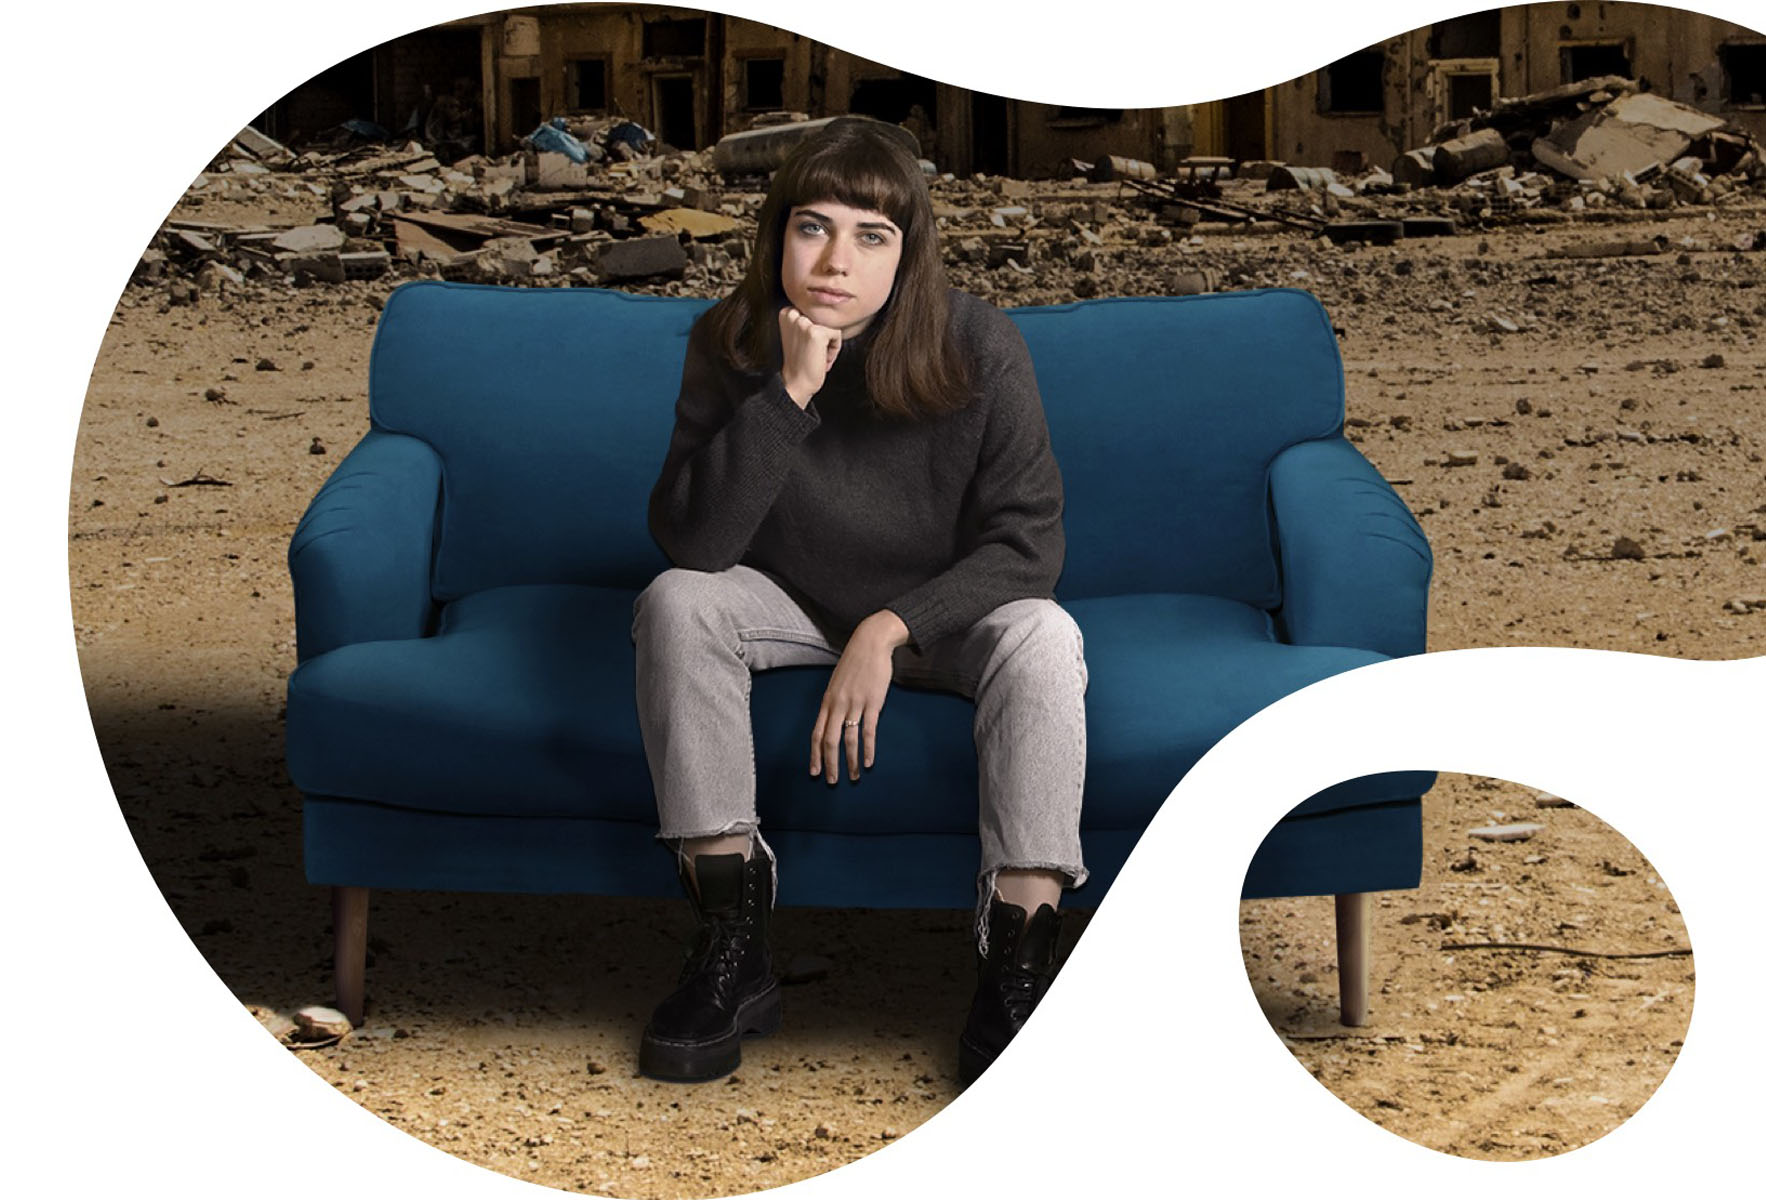 bubble image of a girl seated on a couch with a war background